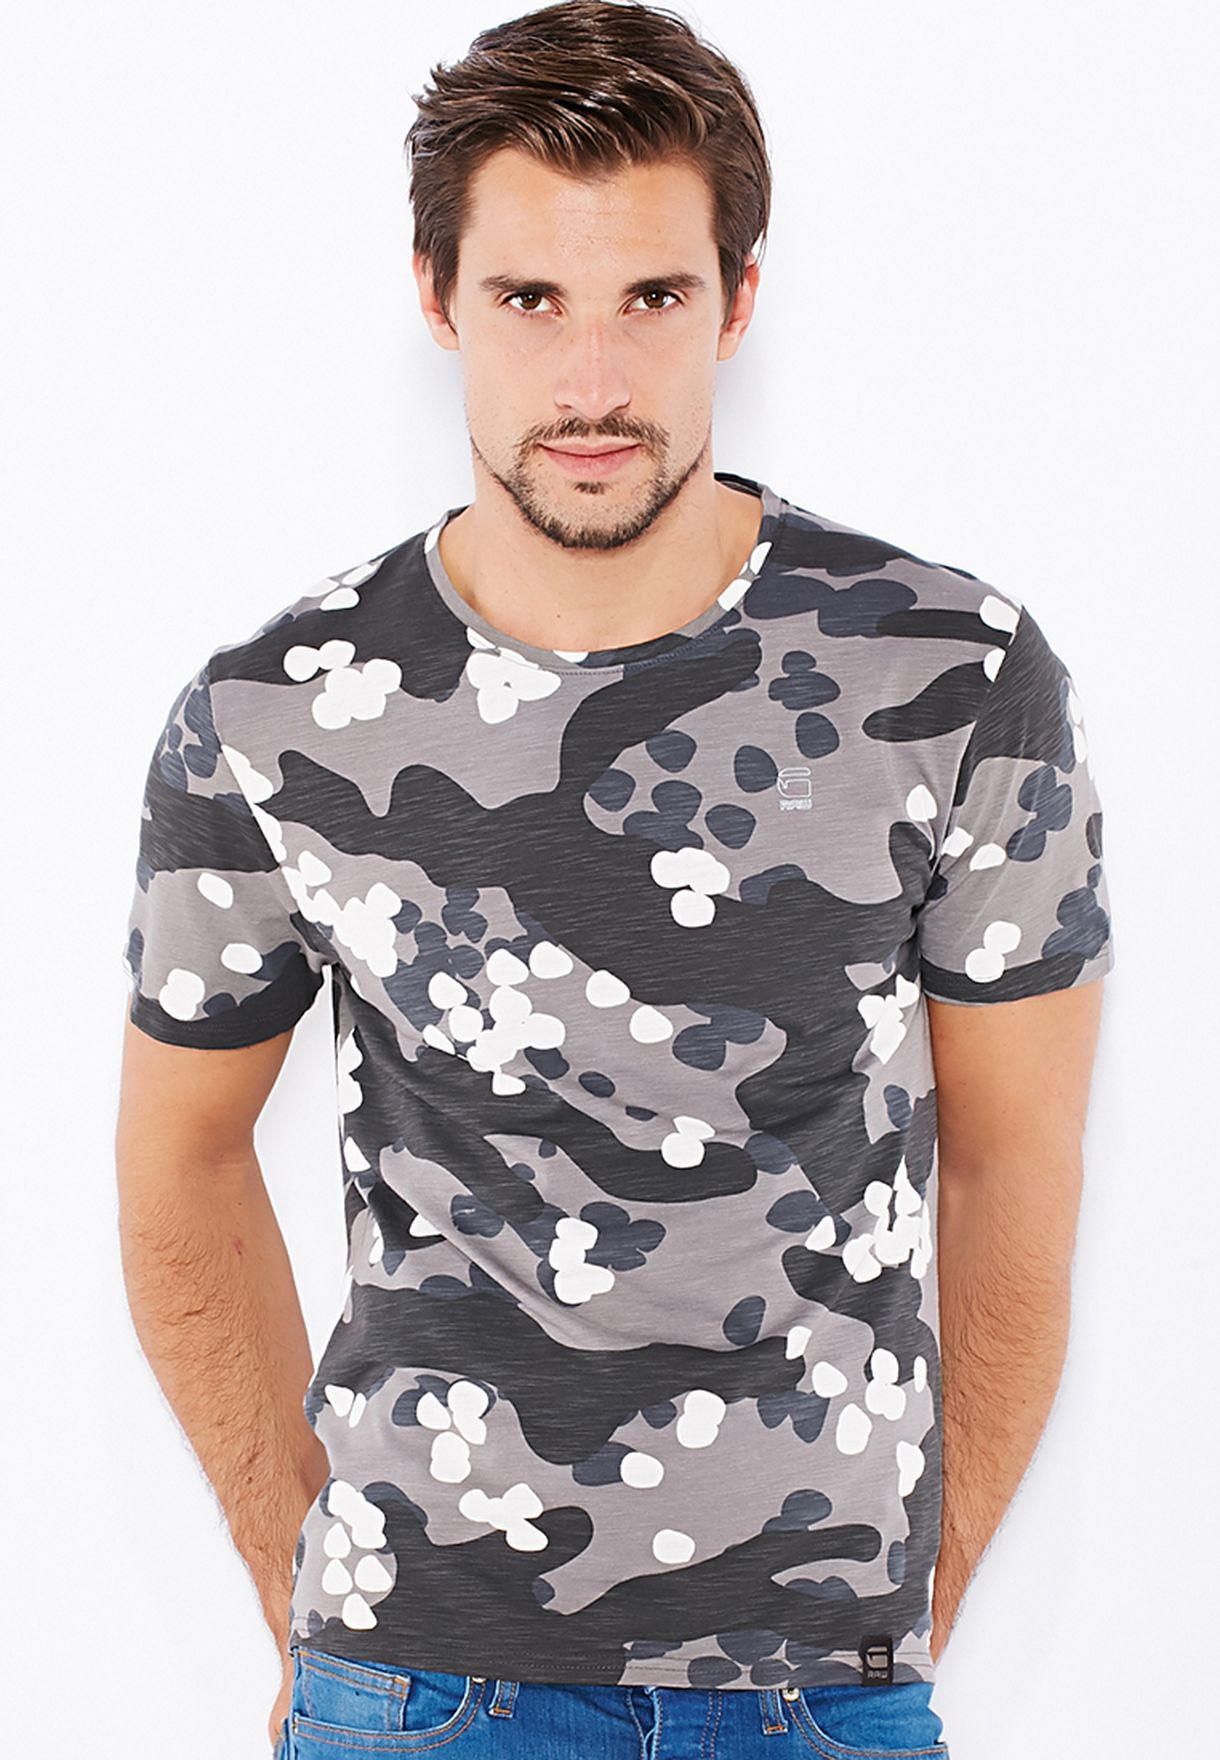 c81c606f6b8 Shop G Star Raw grey Dual Camo Jisoe T-Shirt 84322E-6608-1812 for ...